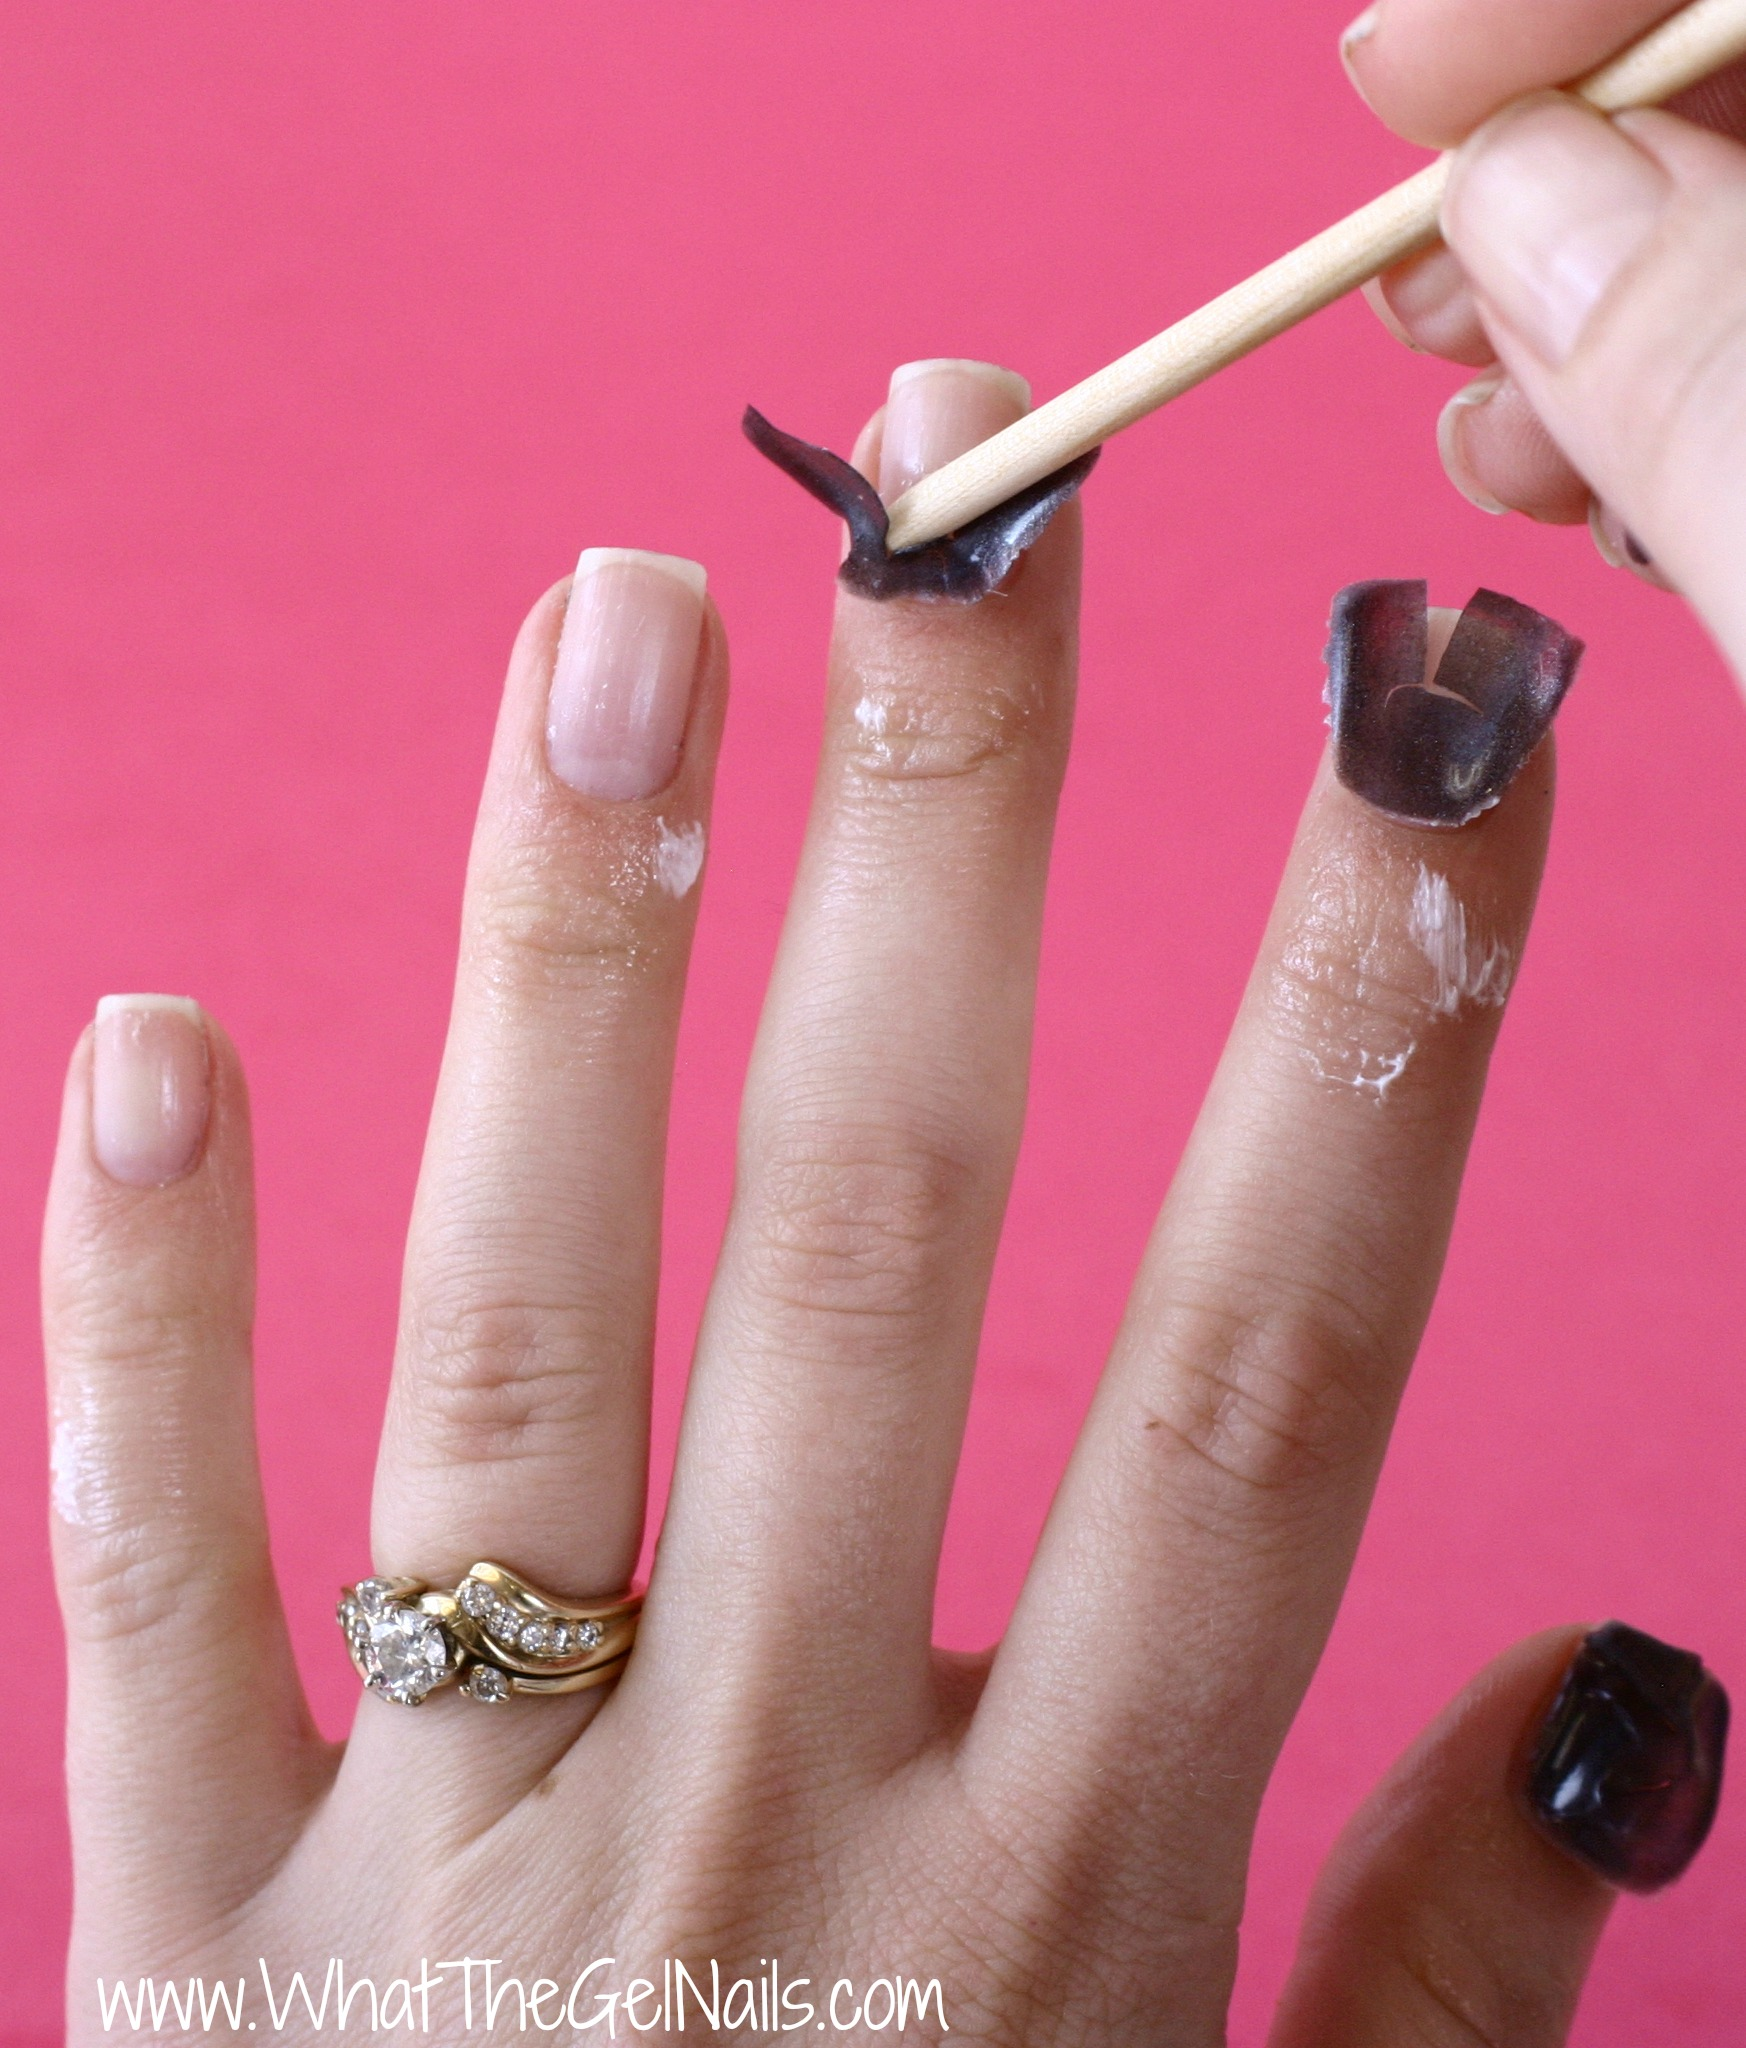 Removing gel nails - Expression Nails